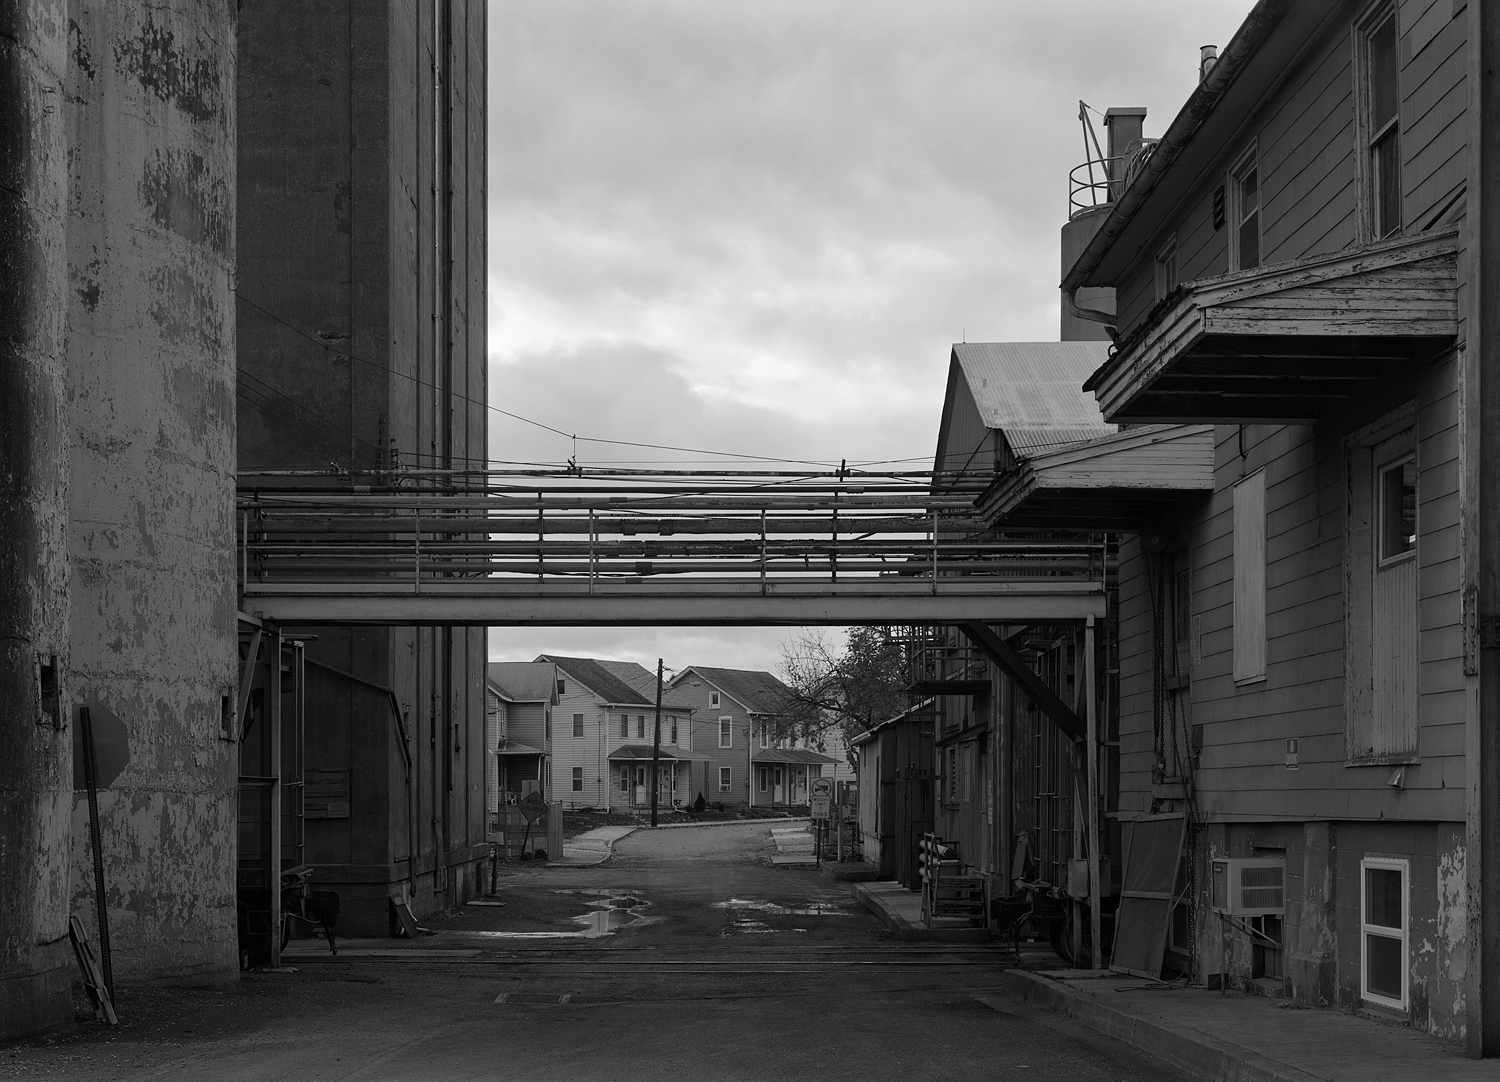 Former Milling Complex of the Wheatena Company, ConAgra and finally Homestat Farms Ltd located off Second Street in Highspire Pennsylvania. The facility straddles Jury St, in this view looking West. To the right (North) is the milling buildings and offices, the left (South) are the storage silos. The dwellings in the background are typical of the area, resembling company homes from the nearby former Bethlehem Steel Steelton Plant. If one looks carefully there is a former Chessie Covered hopper tucked away to the left of the grade crossing in the center foreground.